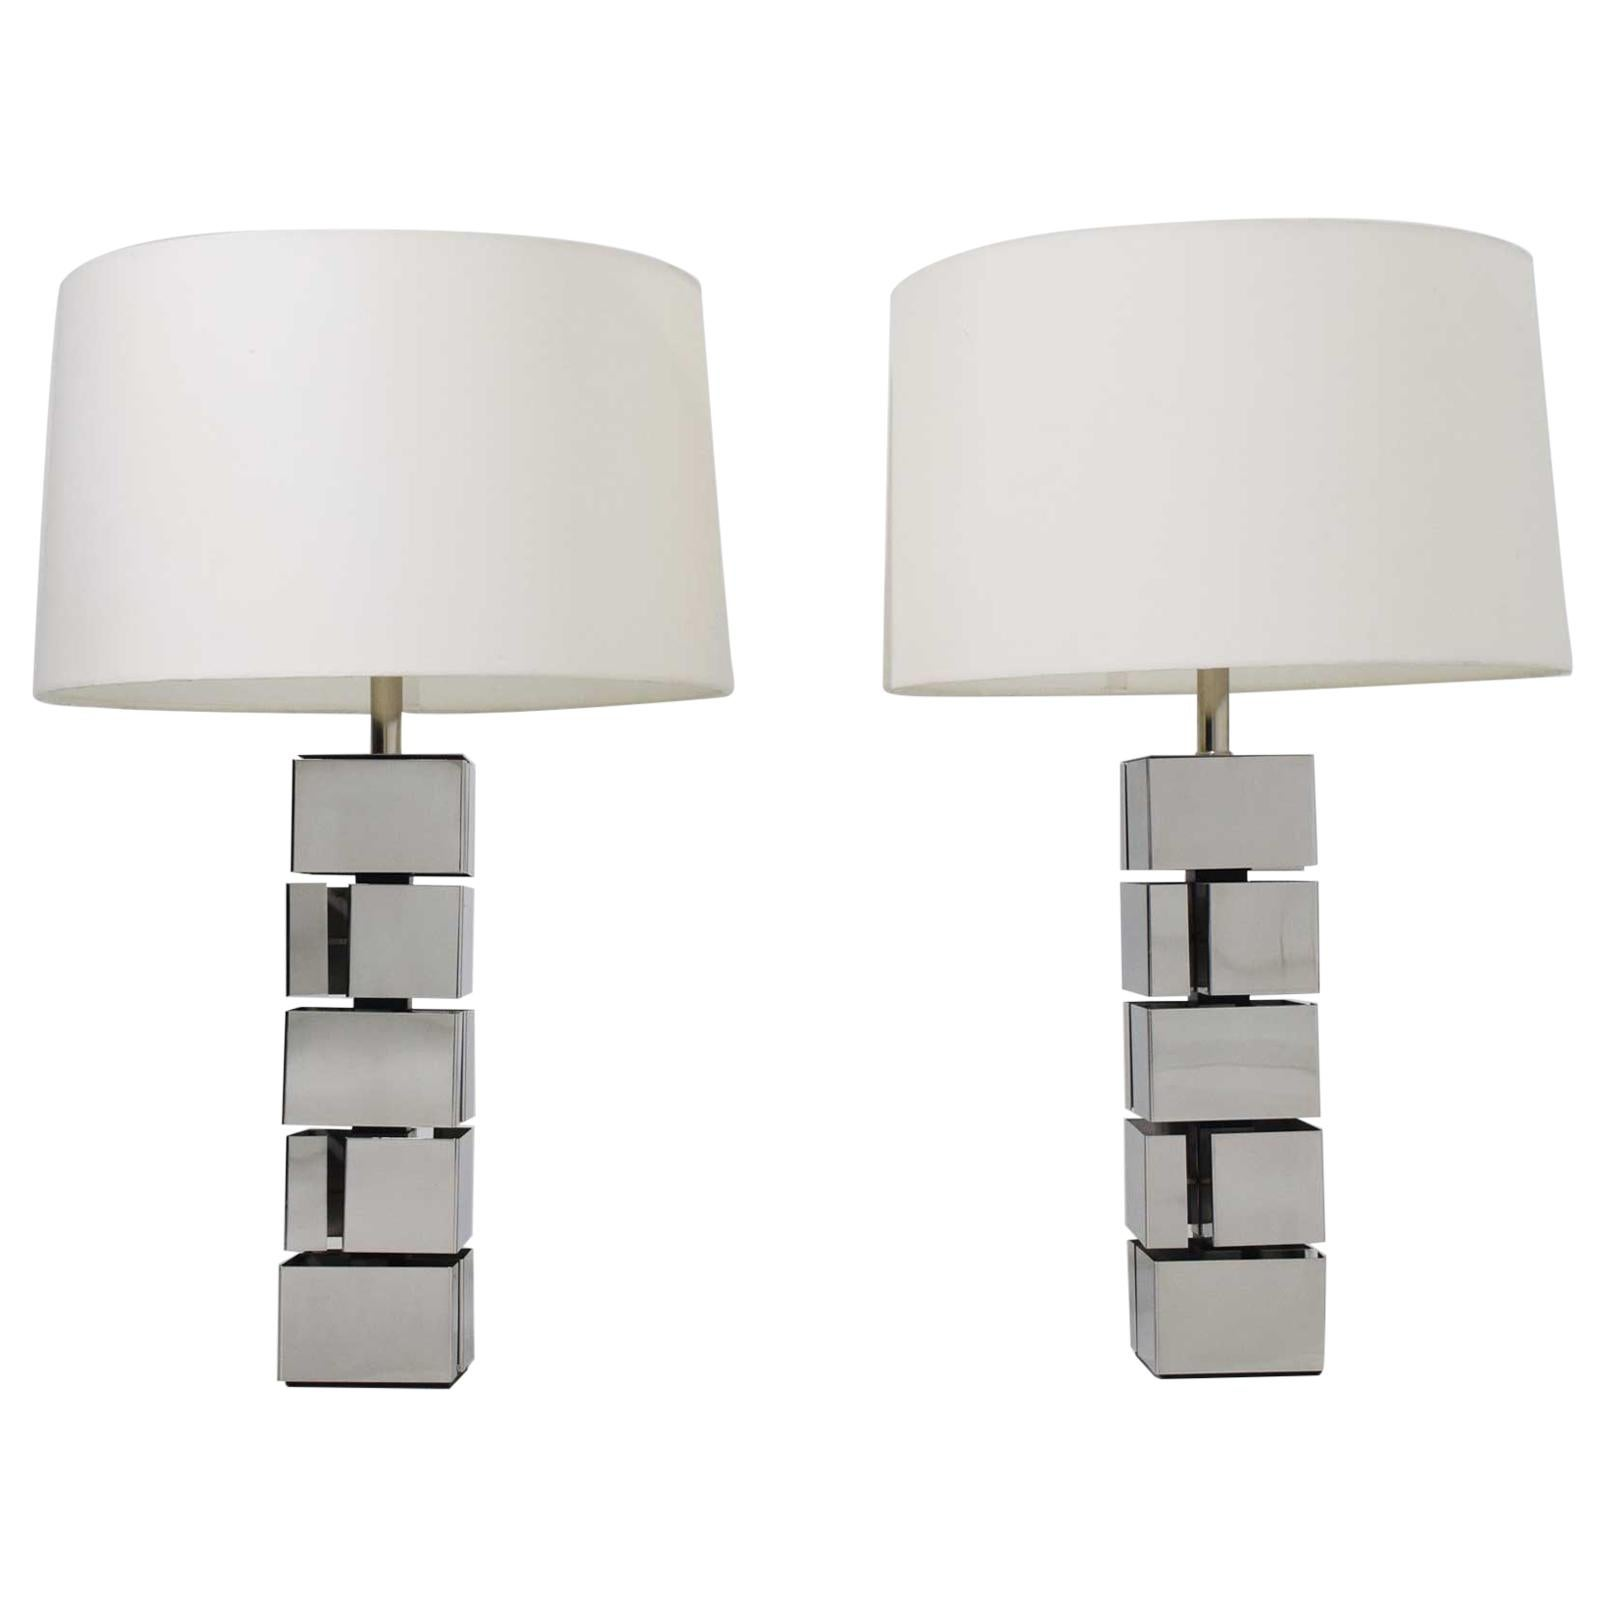 Curtis Jere Style Polished Chrome Table Lamps